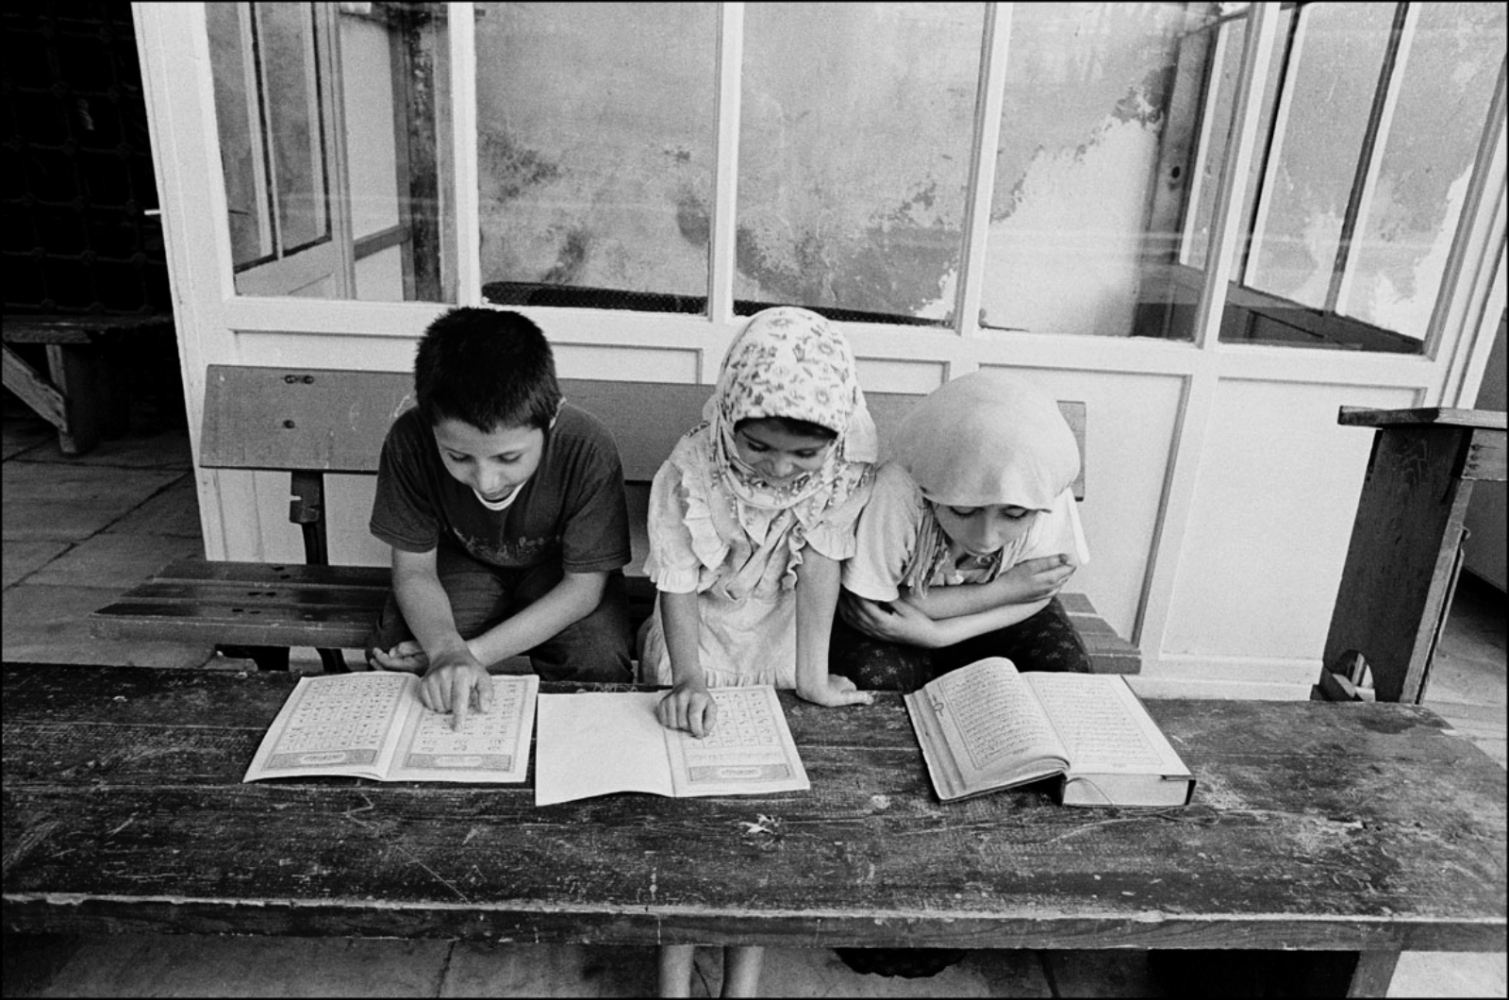 Children Reading, Turkey, Summer 1997